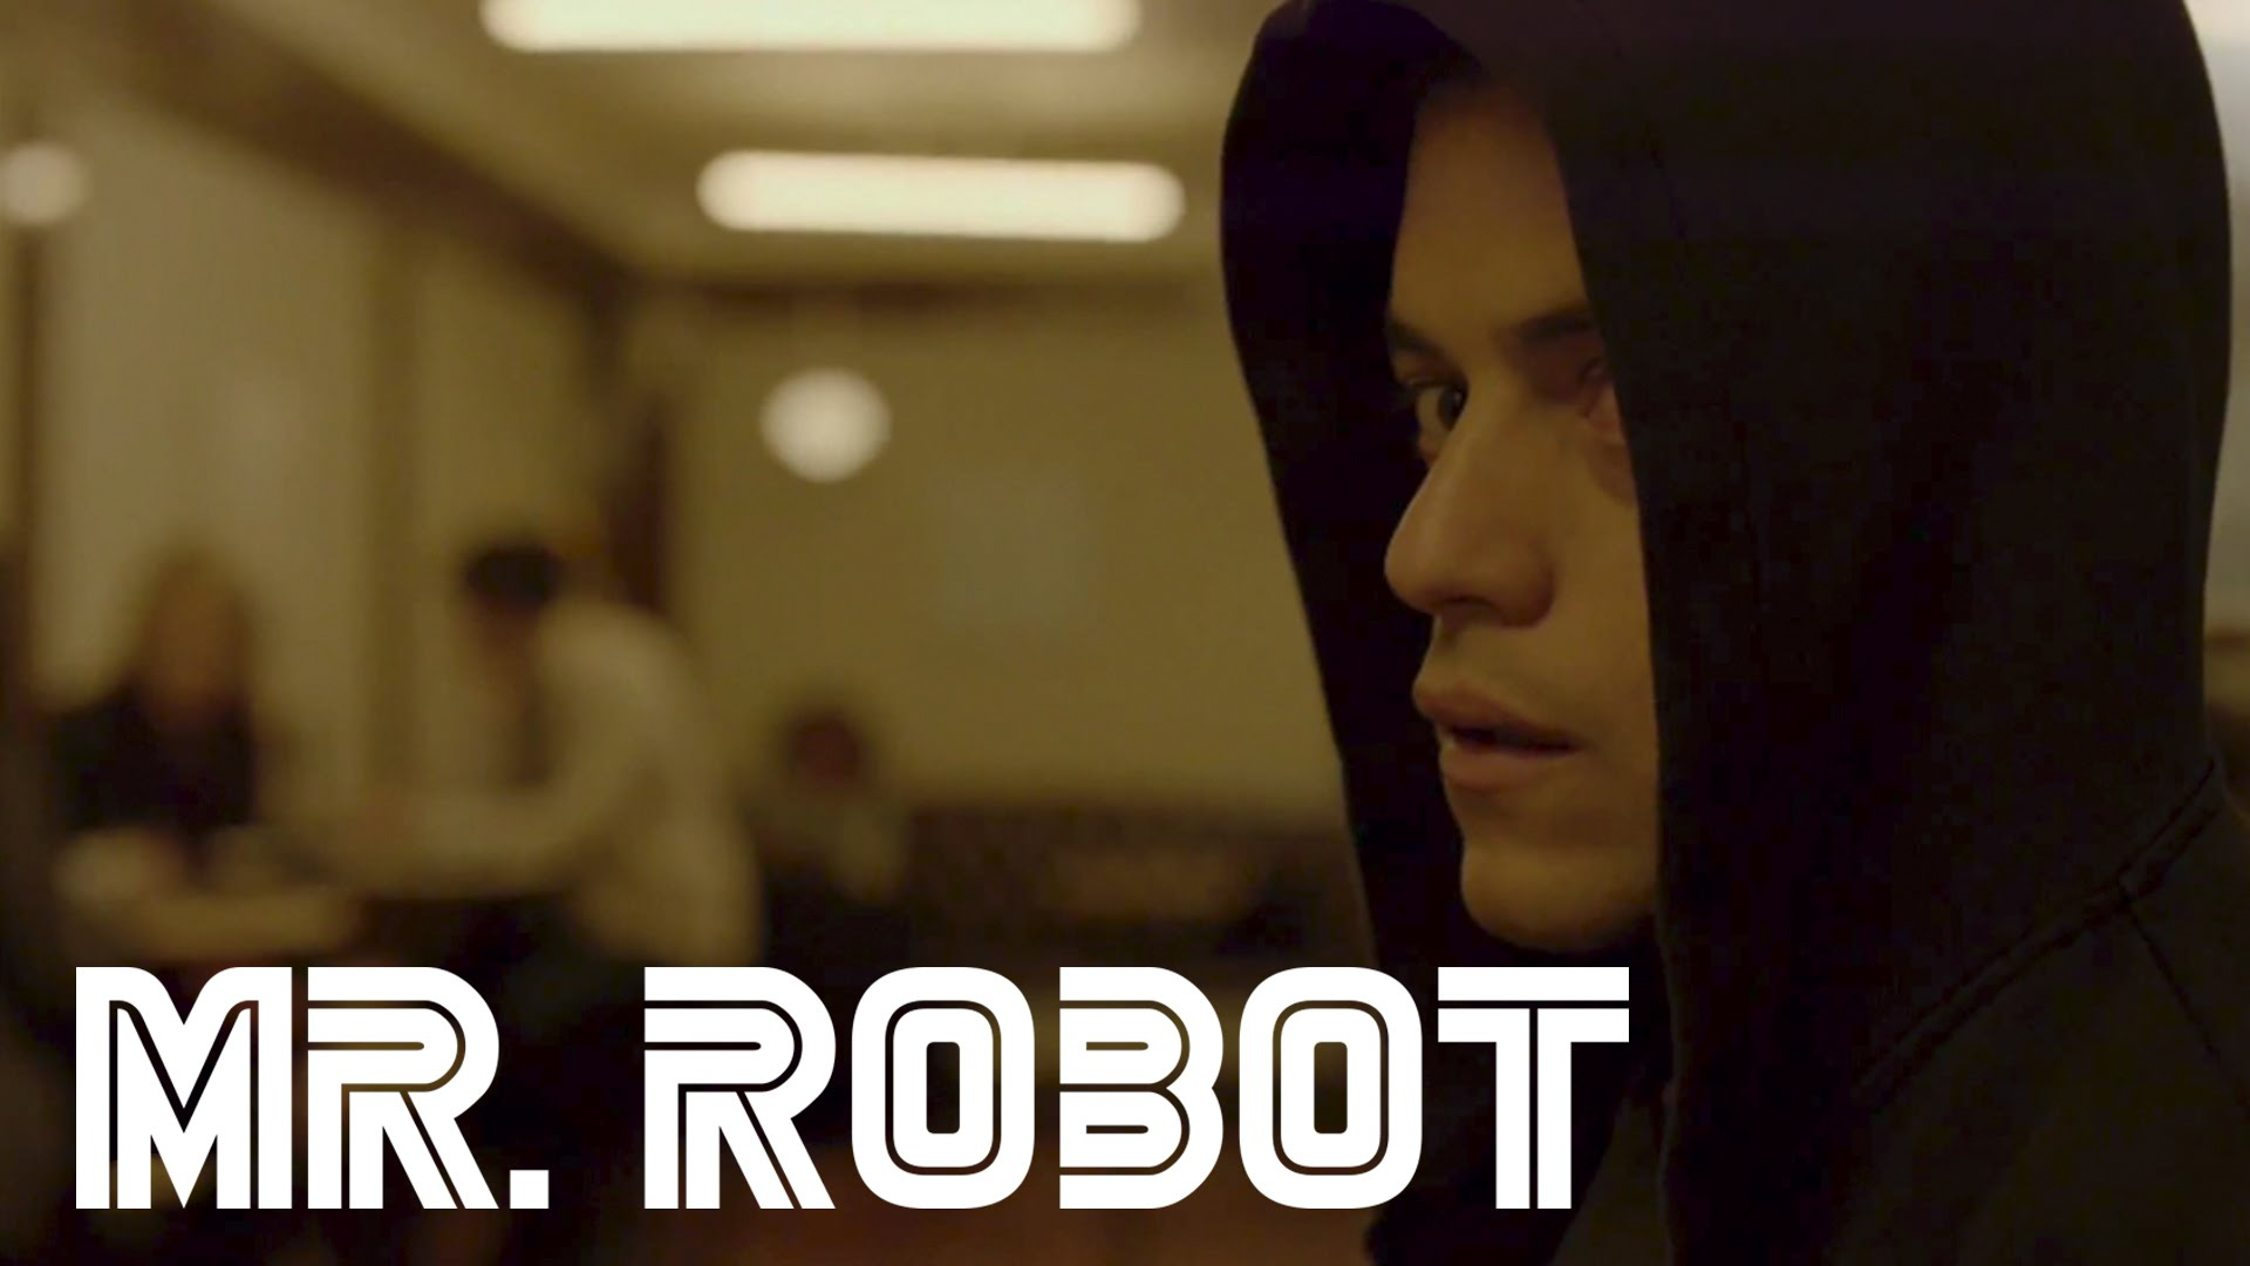 Mr. Robot (1920 x 1080) VoicesFILM.com